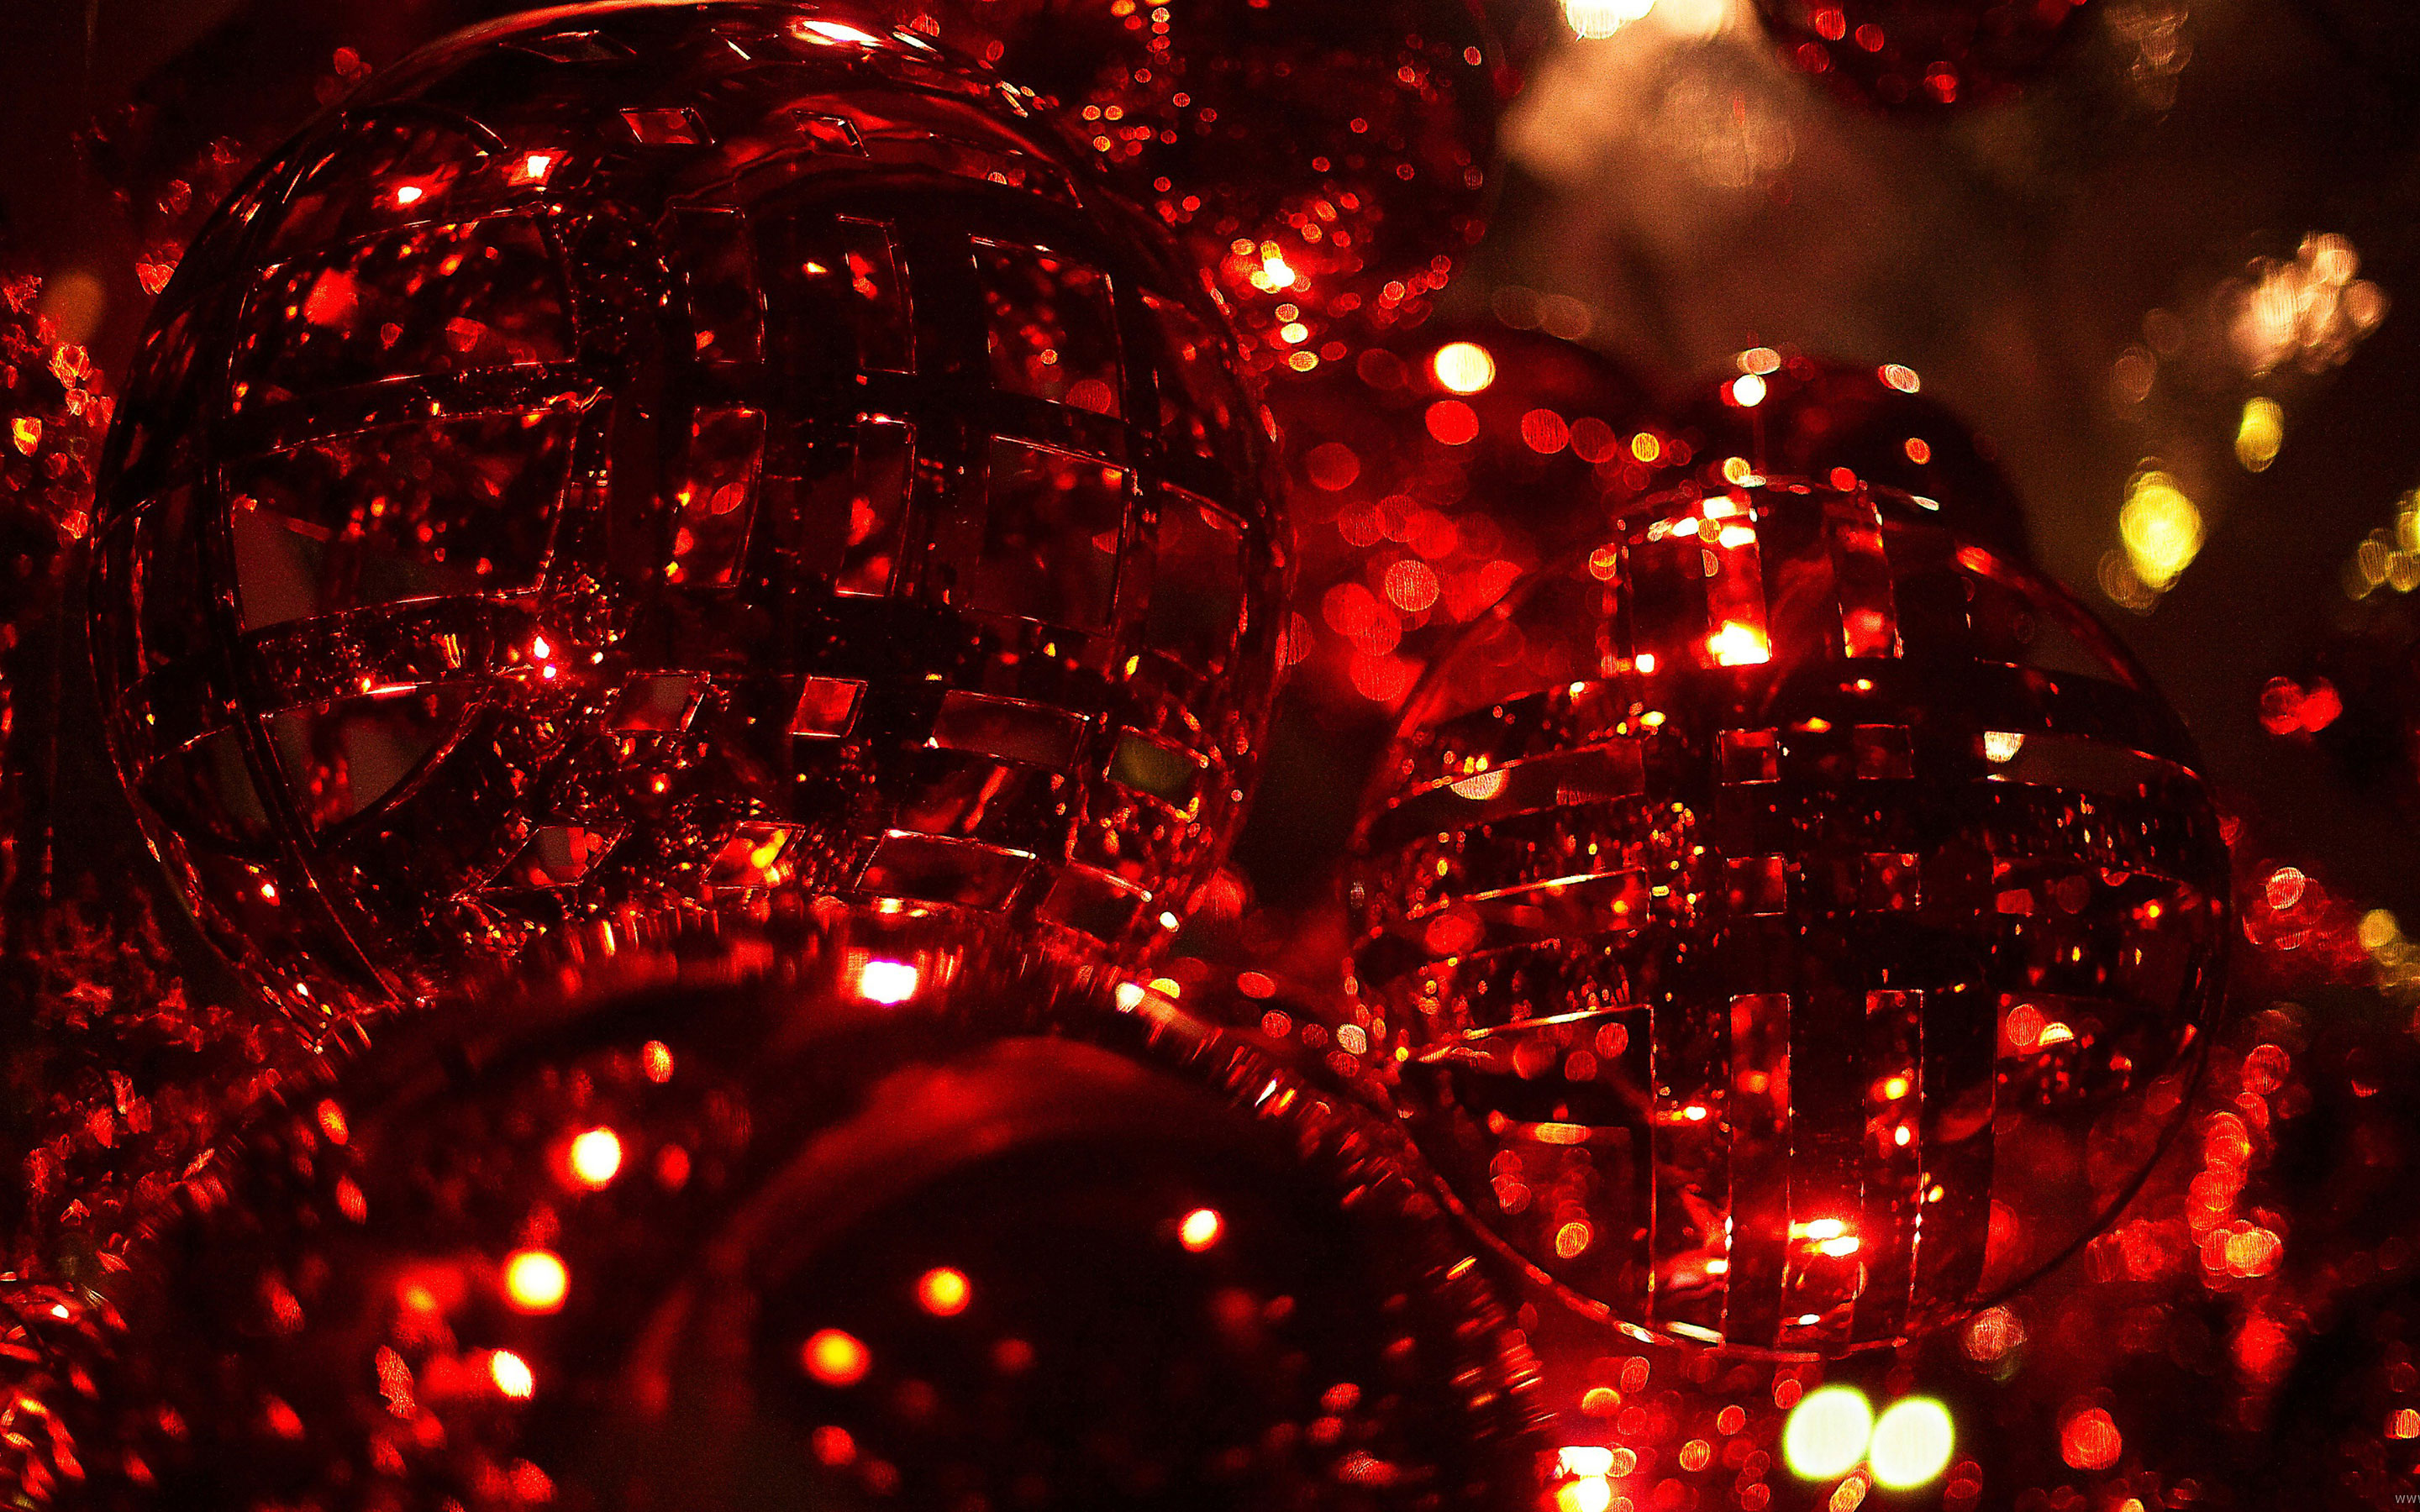 Free-Christmas-HD-Quality-Collection-wallpaper-wpc5804990